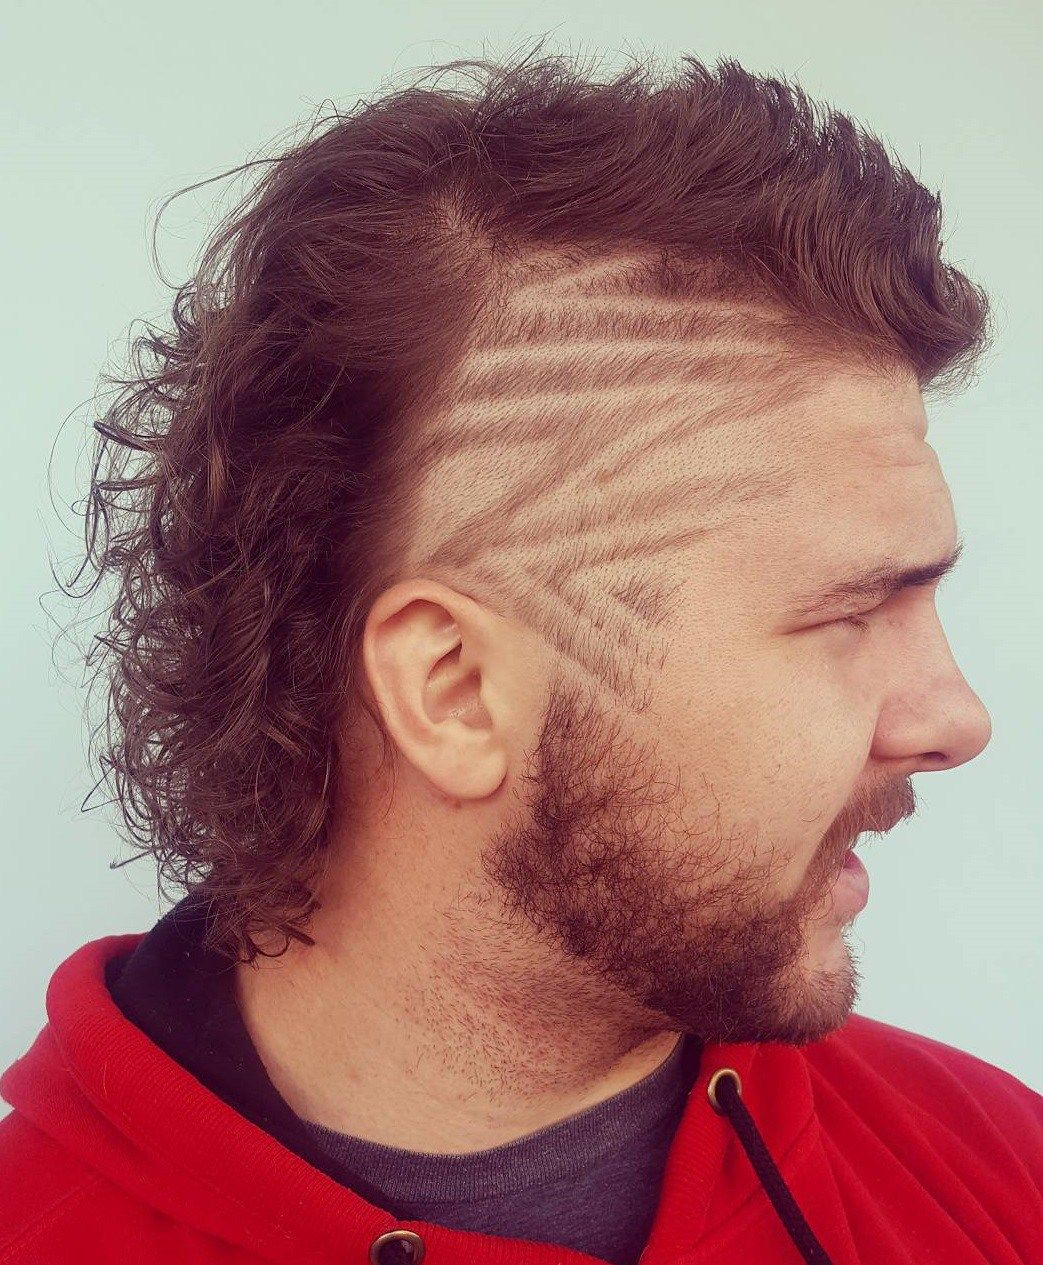 pics Mullet Haircuts: Party in the Back, Business in the Front